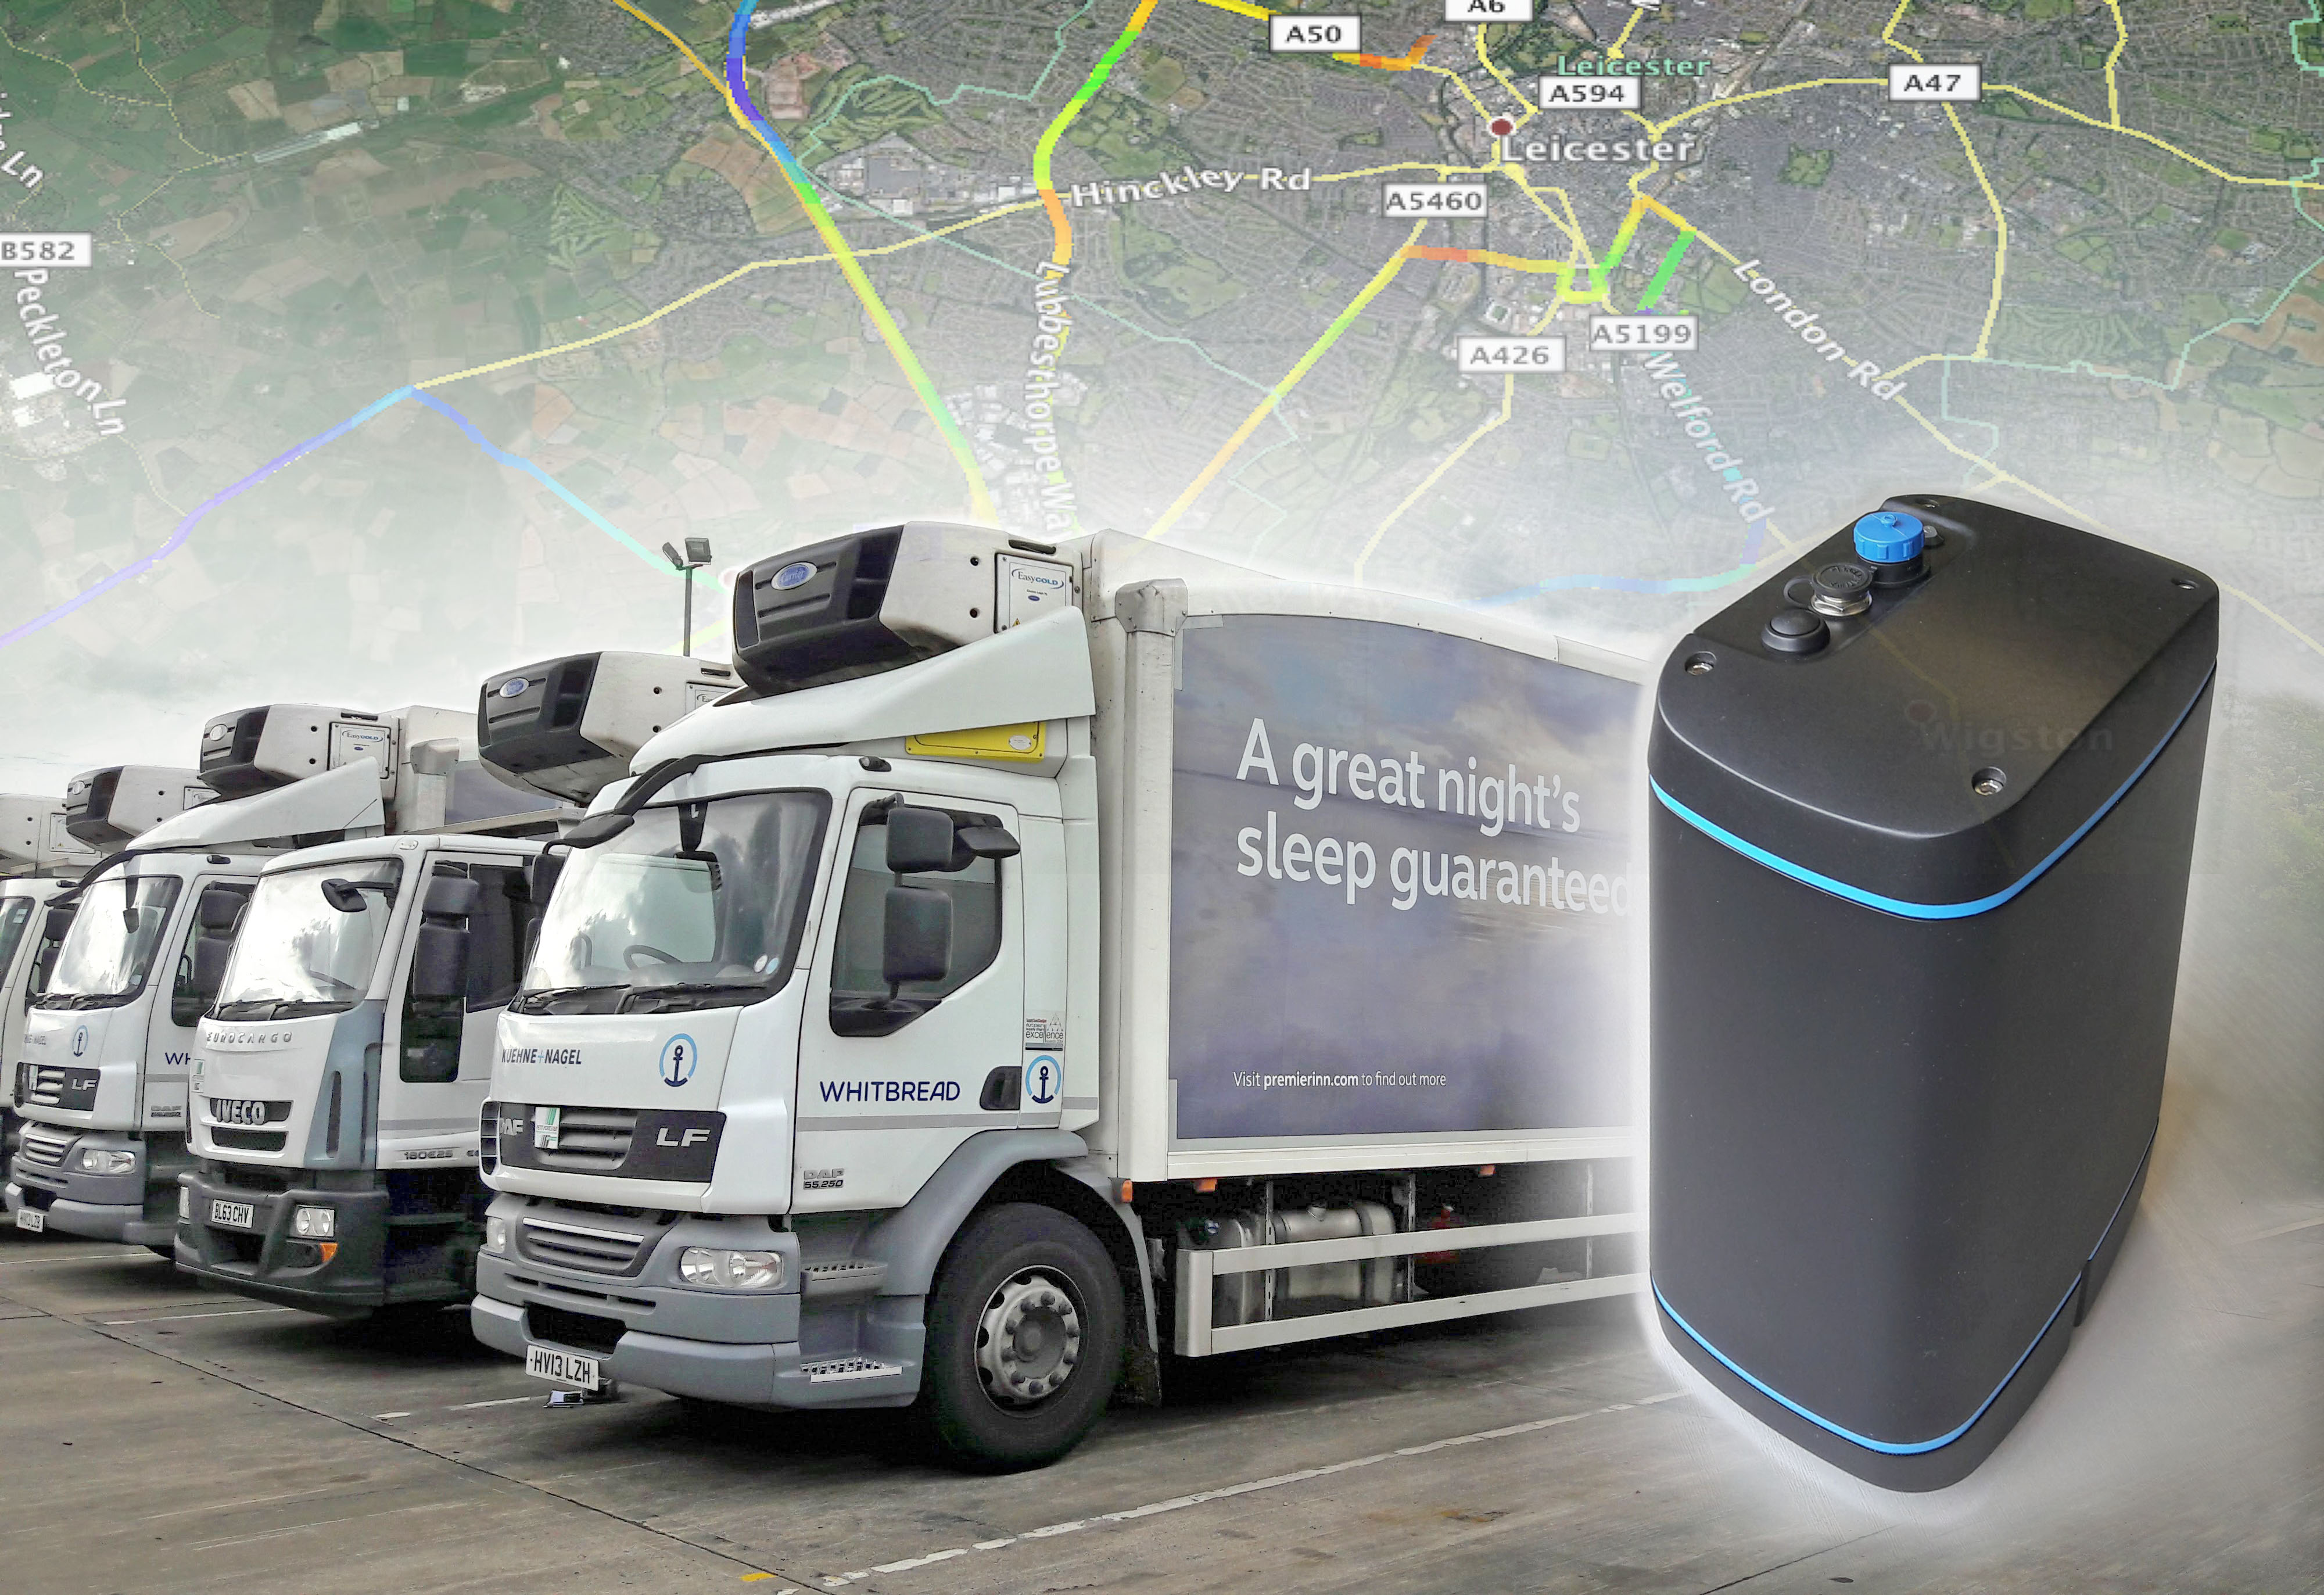 EarthSense Systems equips commercial delivery vehicles with air pollution sensors